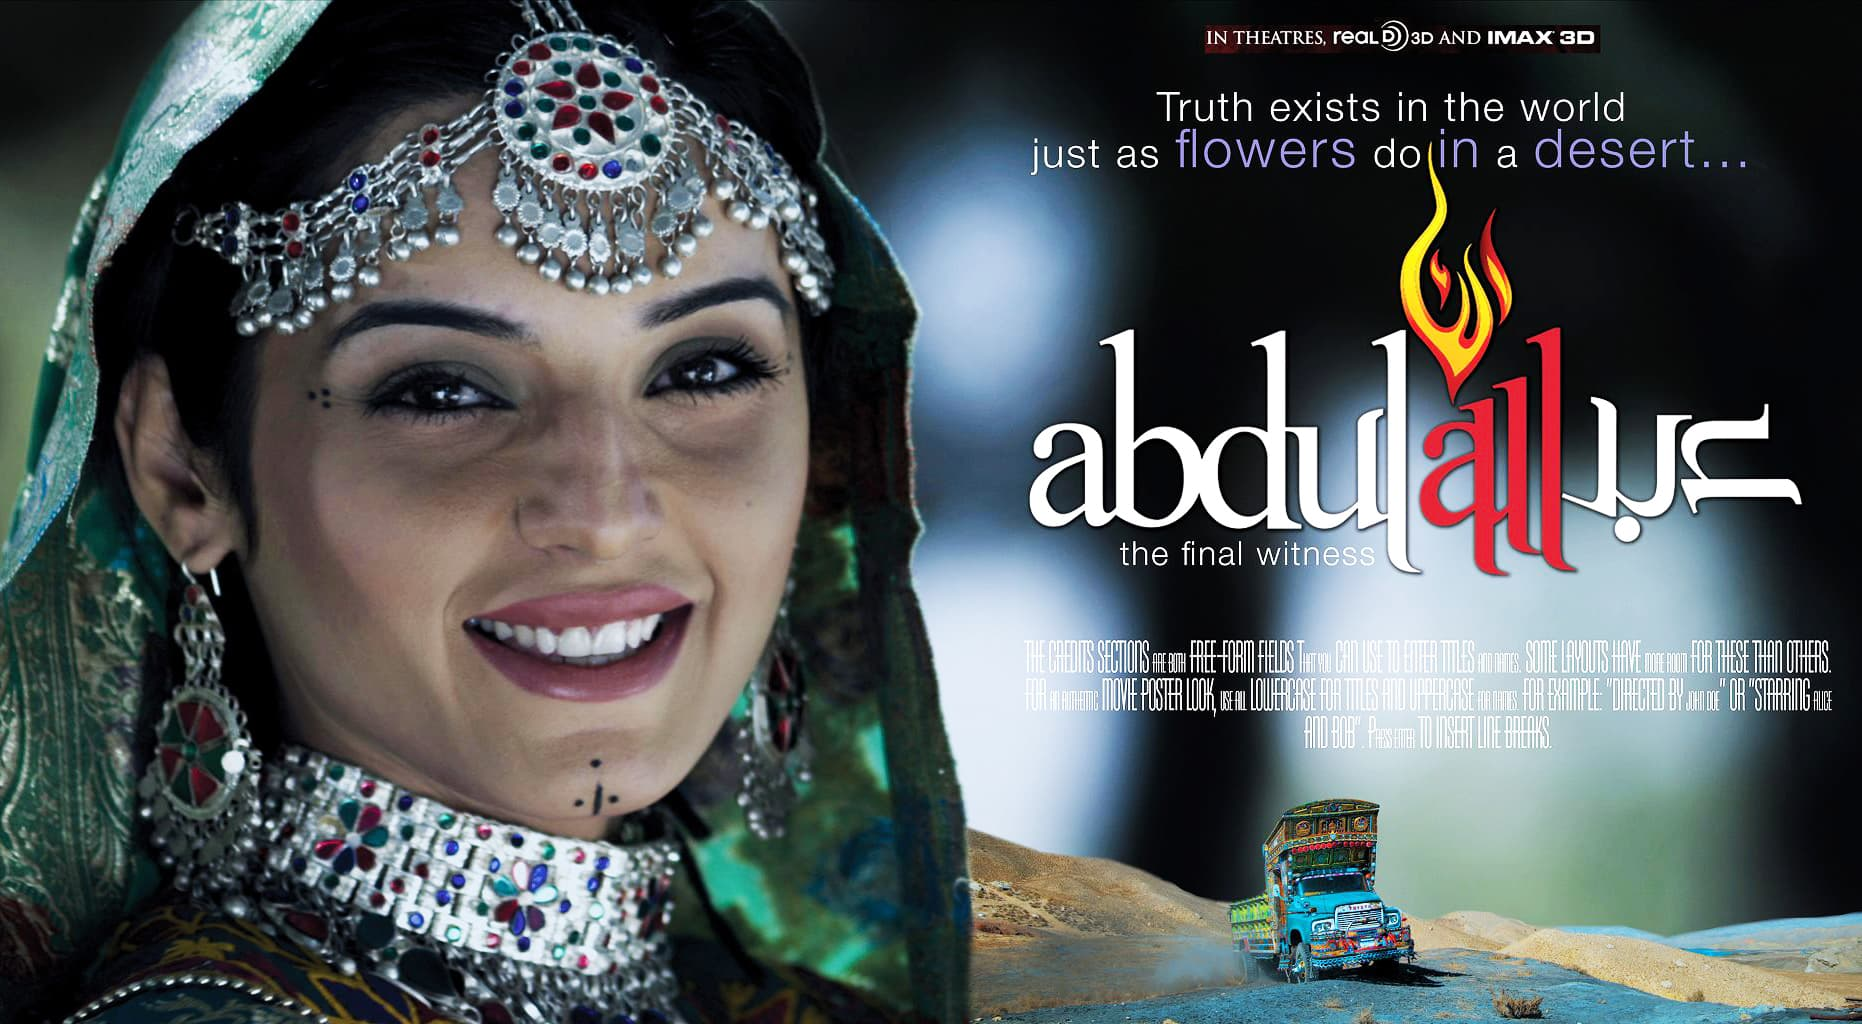 Abdullah stars Imran Abbas, Sadia Khan (pictured in the poster here), Hameed Sheikh and Sajid Hassan in important roles – Publicity photo